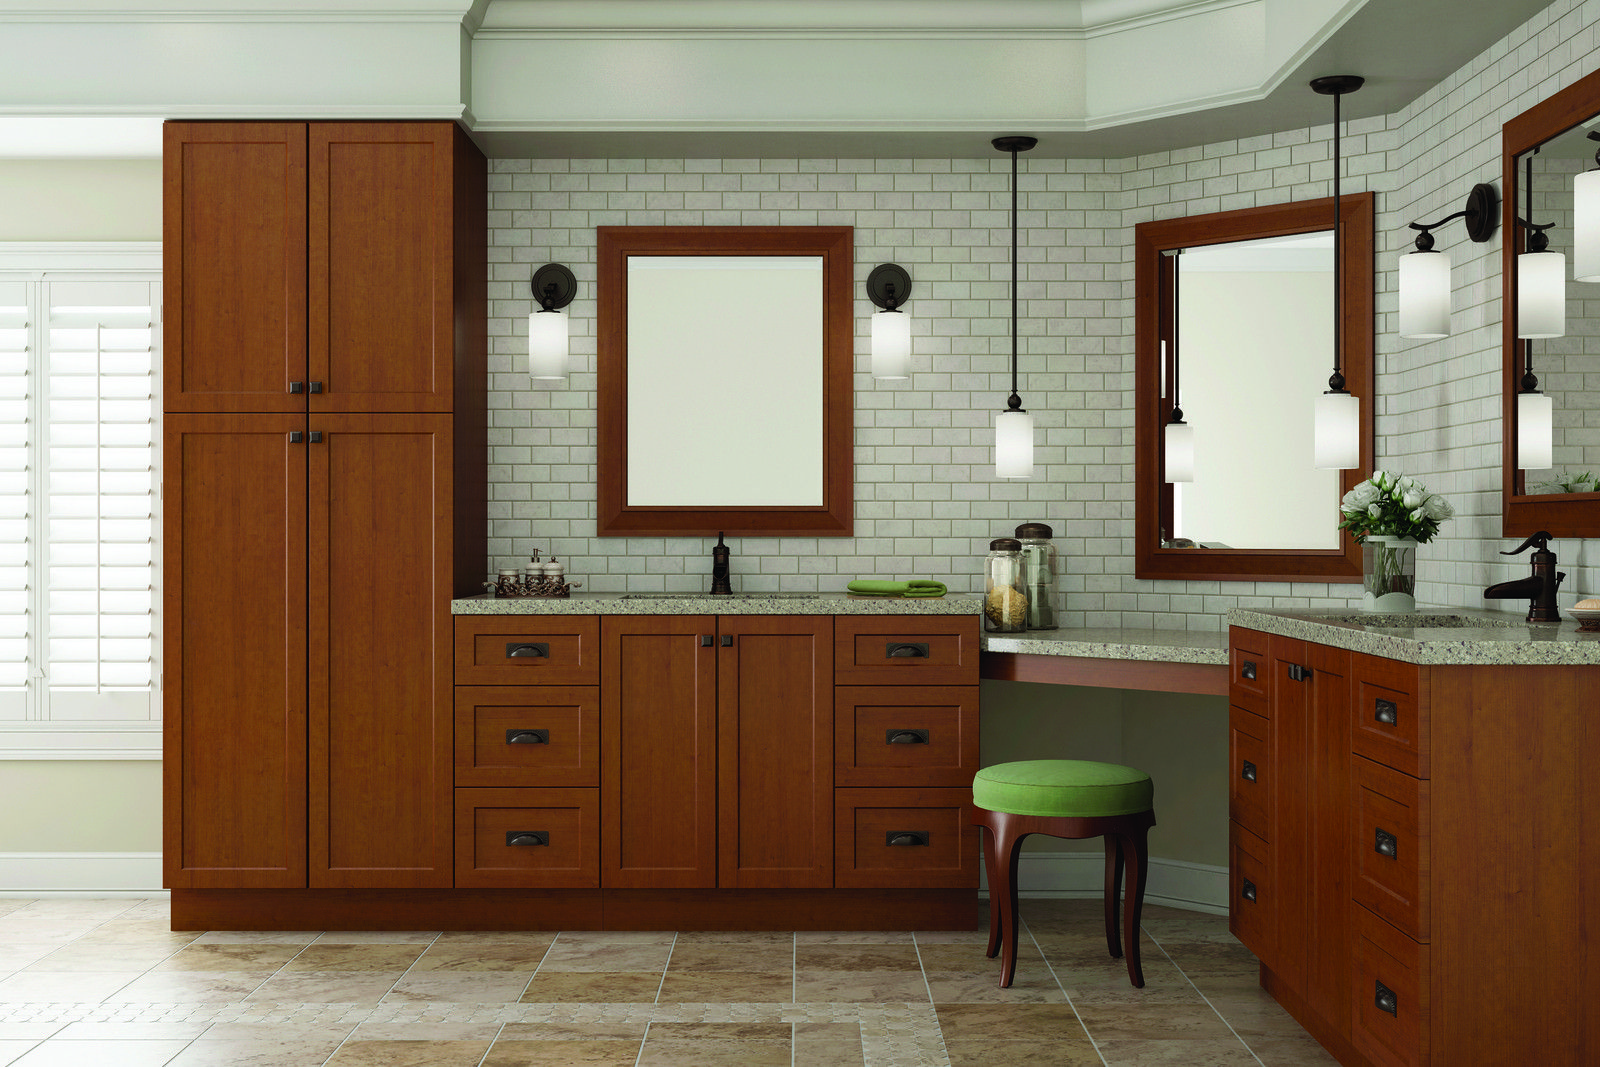 Kitchen And Bath Cabinets Ikea Kitchen Cabinets Bathroom Vanity New On Inspiring Using For Fashionable Idea Can I Use A Base Kids Bathroom Kitchen Cabinets In Bathroom Trendy Bathroom Bathroom